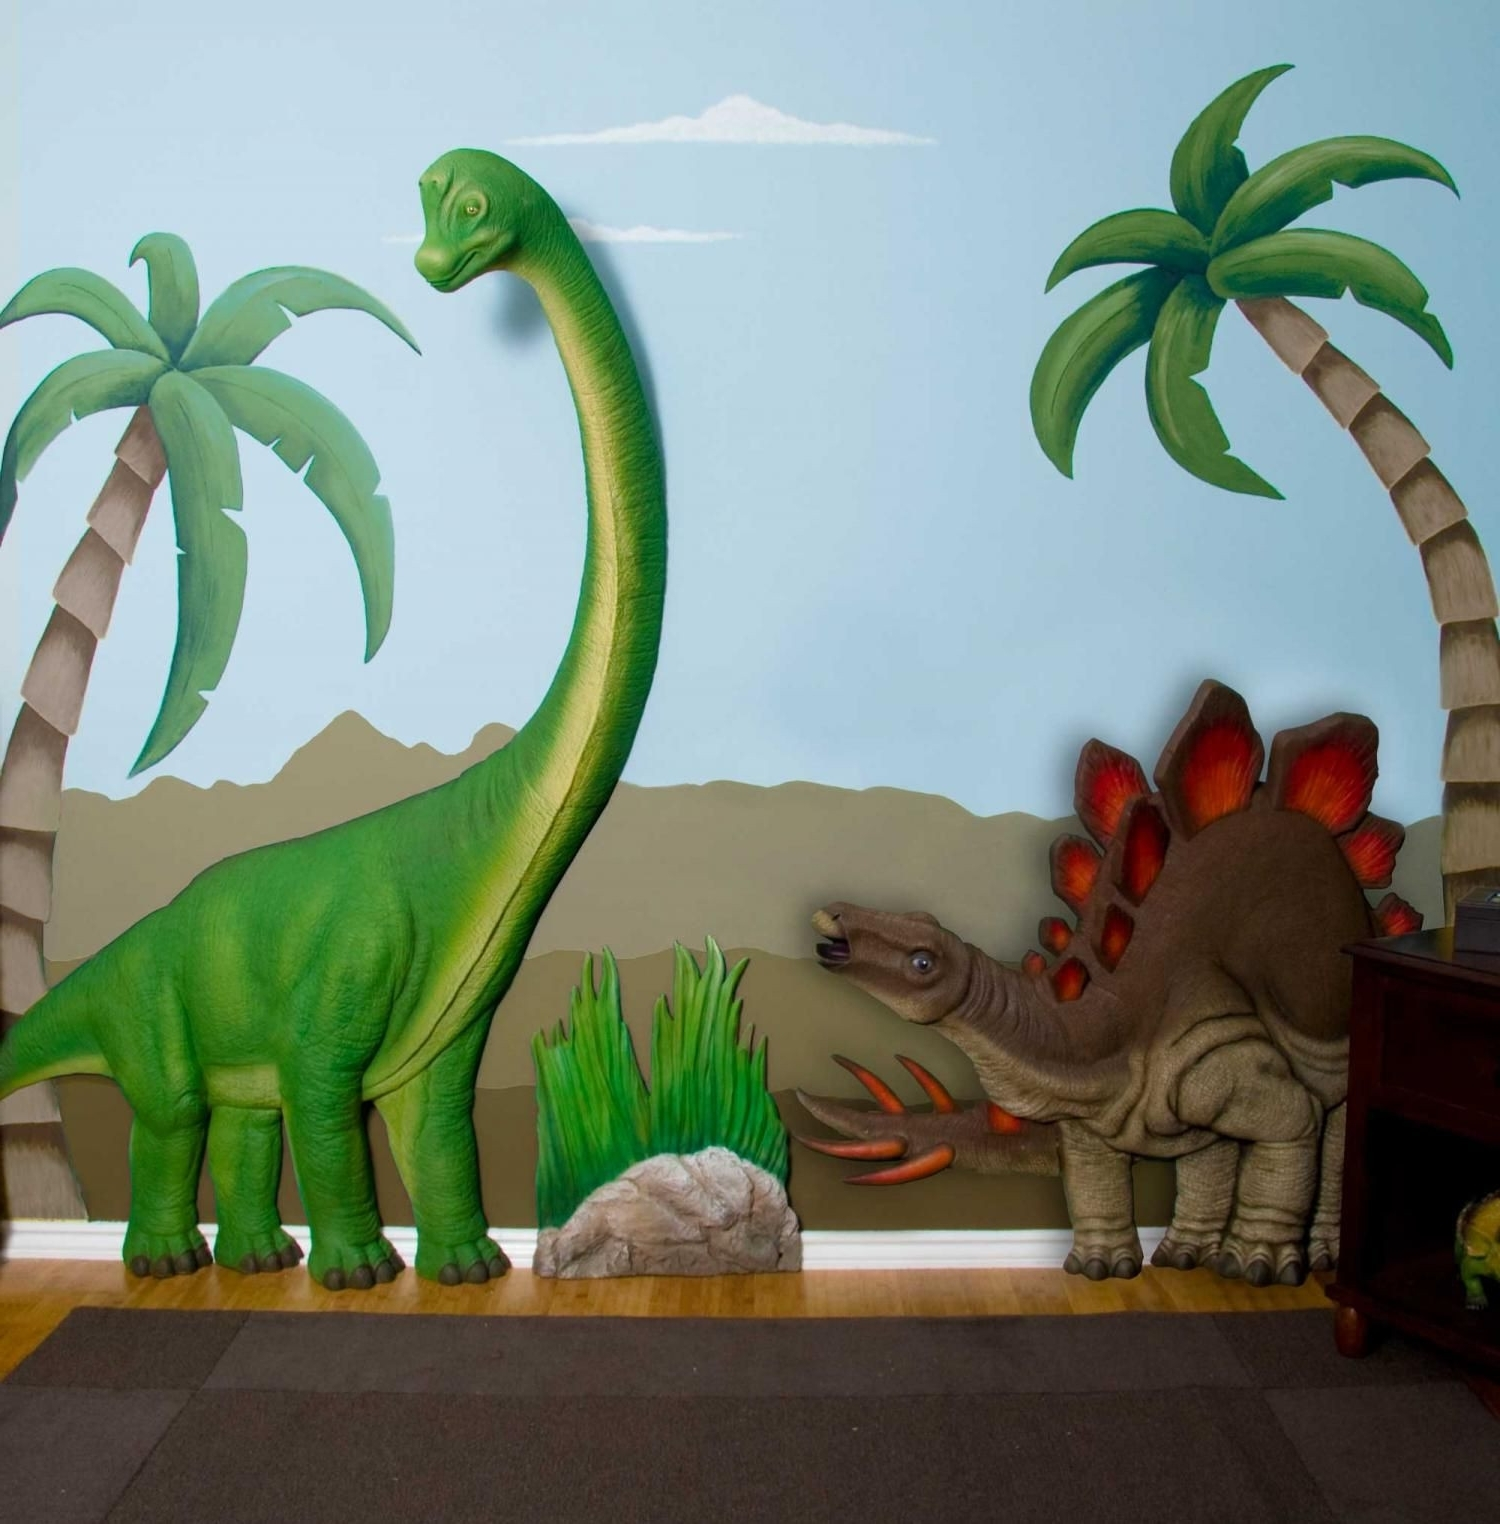 Dinosaur Wall Art Www Fitful Info Outstanding Stretched Canvas Inside Fashionable Dinosaur Wall Art (View 7 of 15)